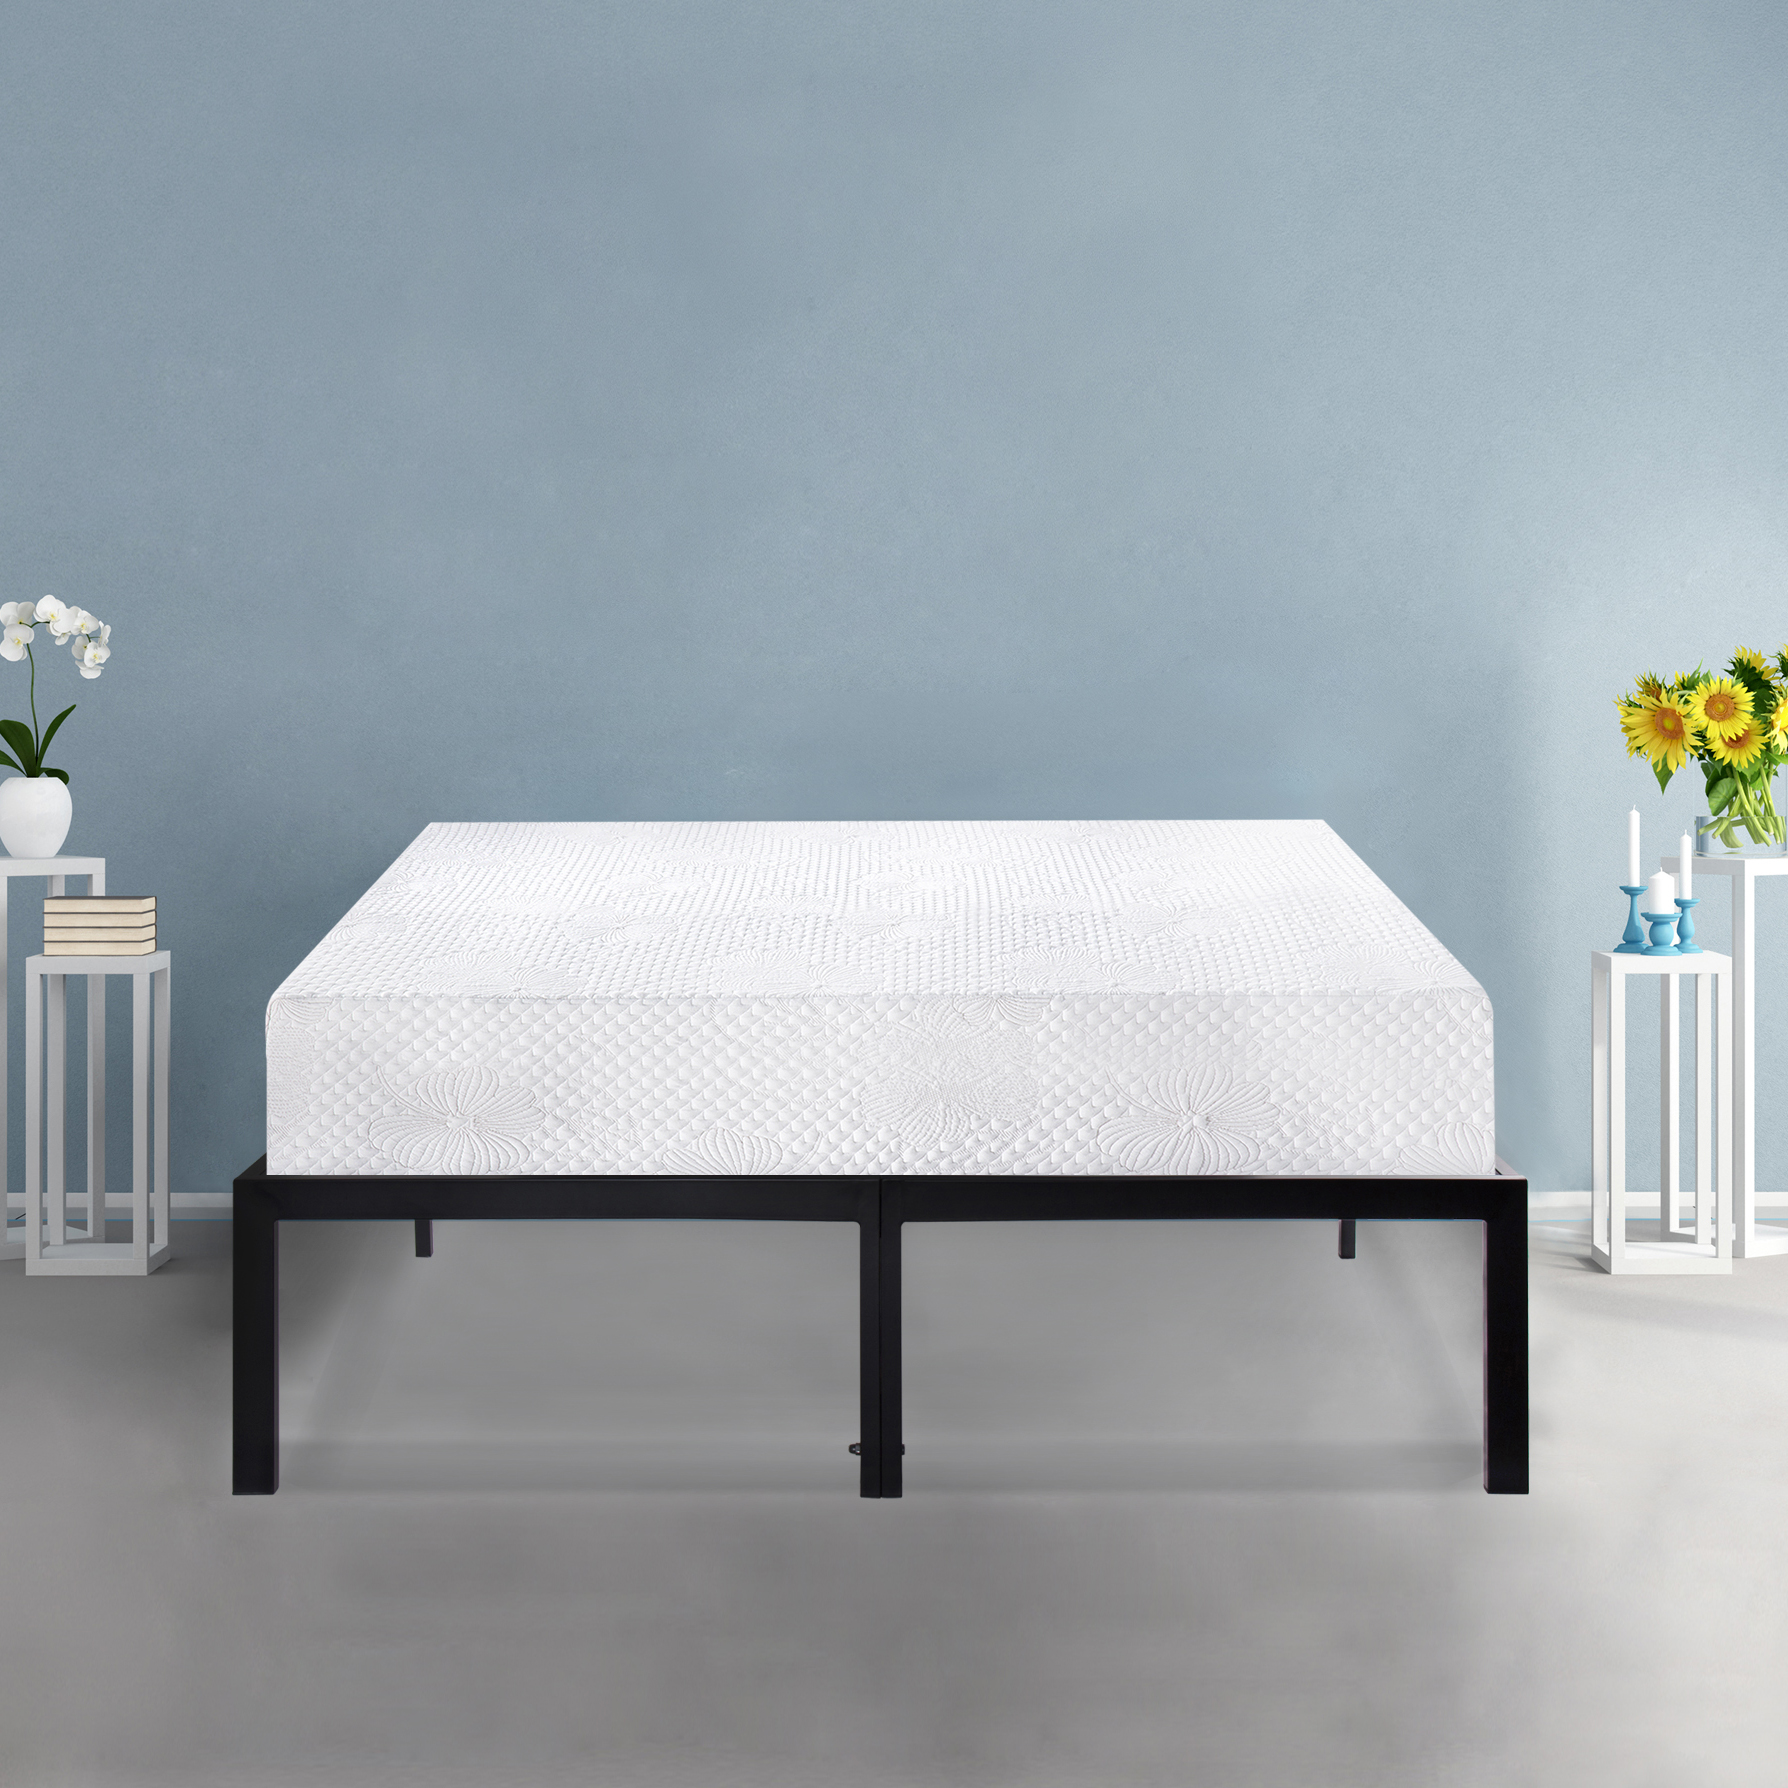 GranRest 8 Inch Ventilated Convolution Memory Foam Mattress by Grantec Co., Ltd